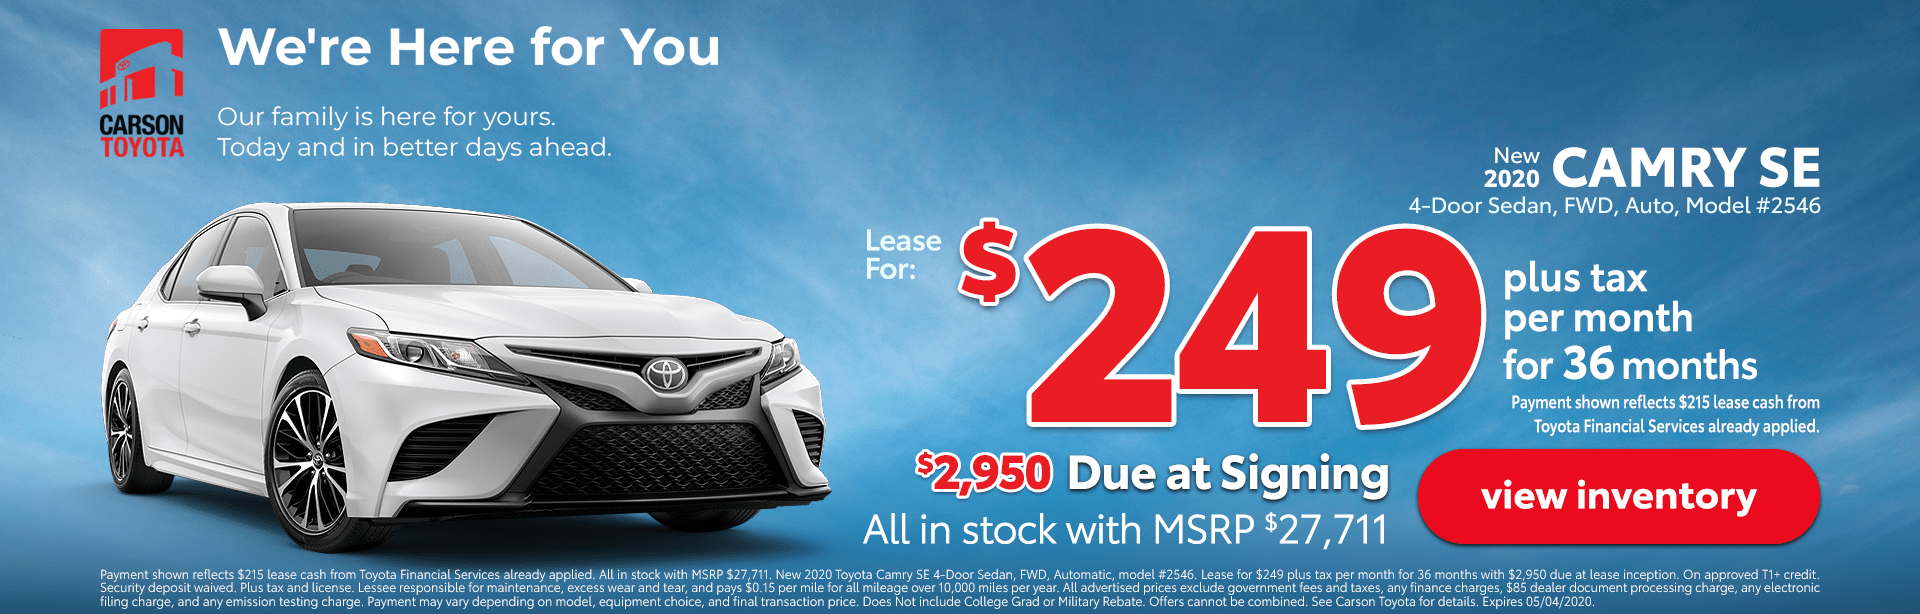 Camry SE Deal